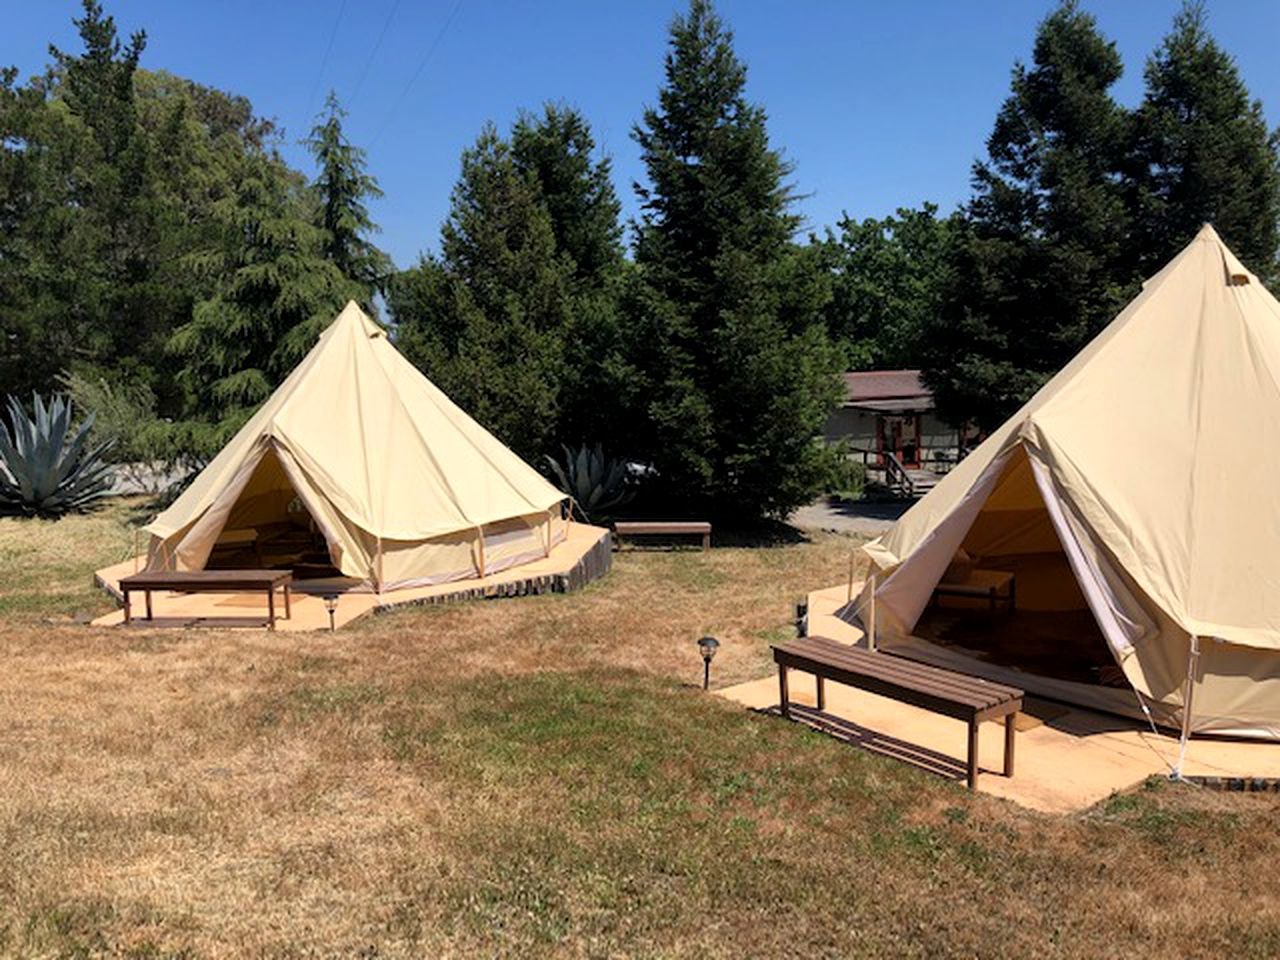 Yurt tent property for Sonoma glamping.